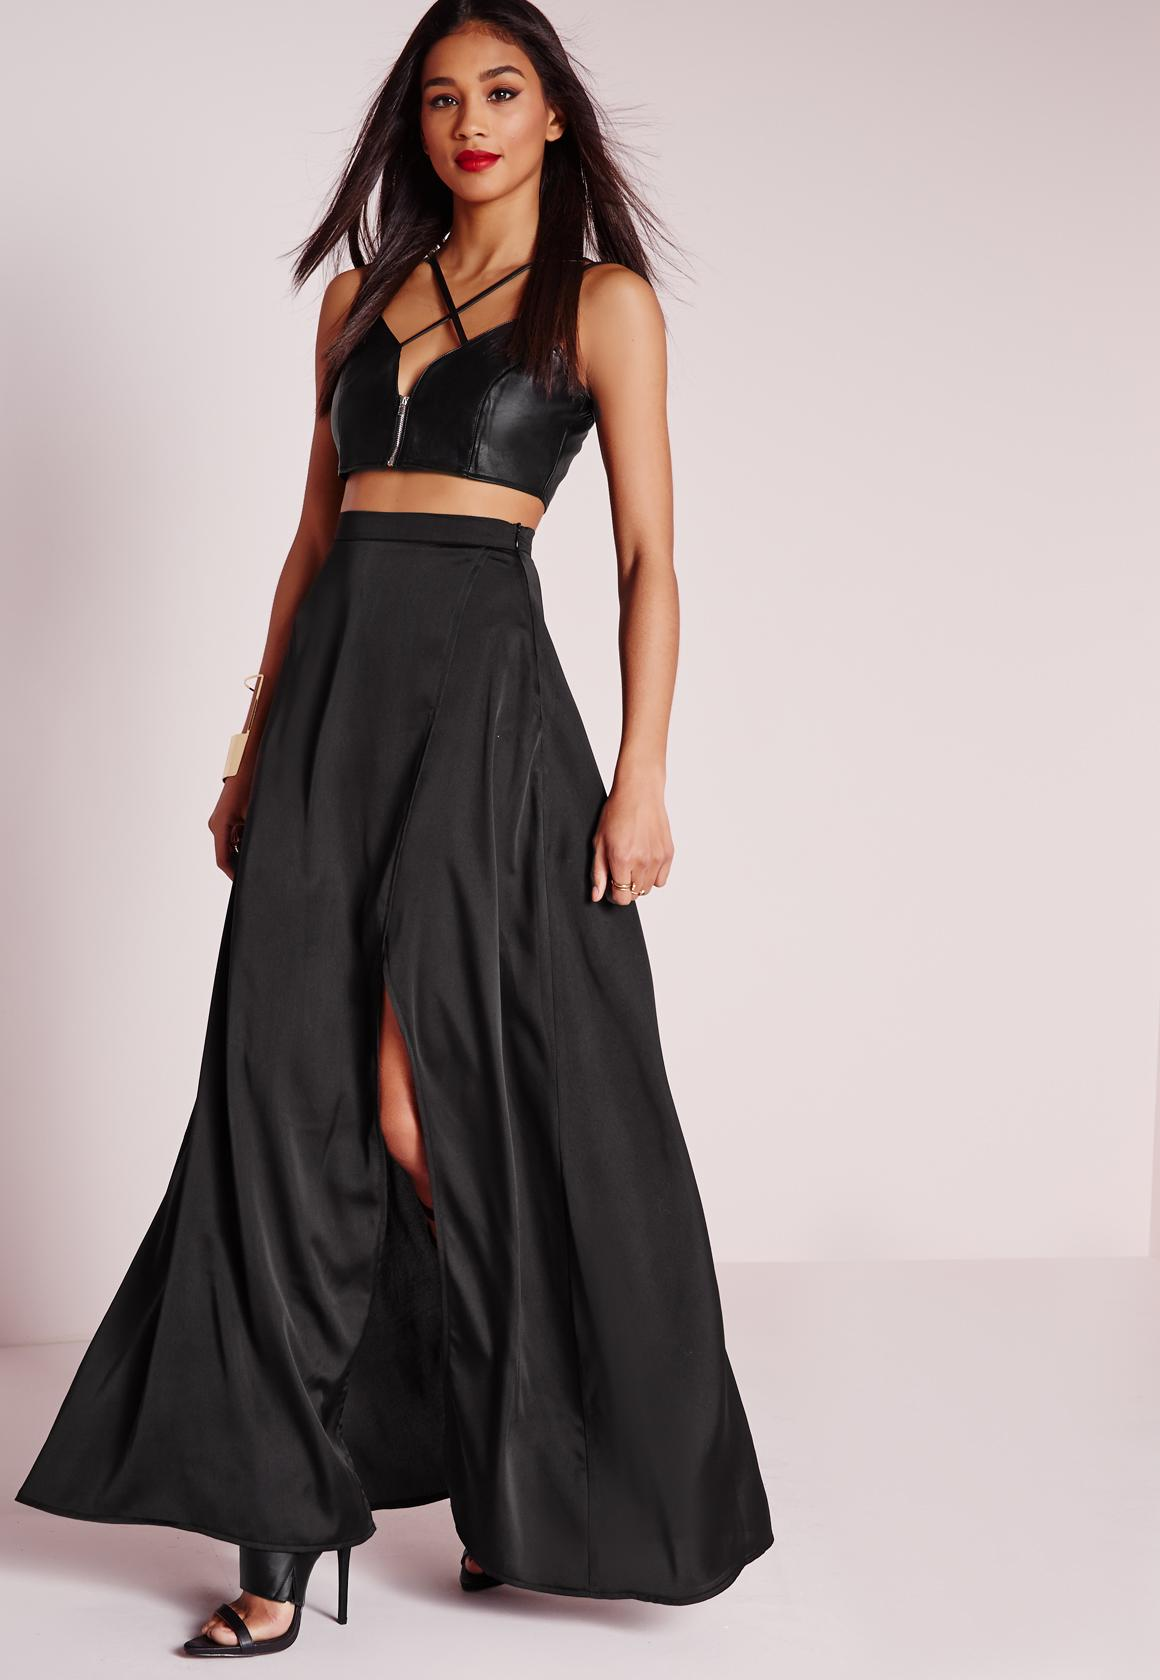 Satin Wrap Maxi Skirt Black - Missguided